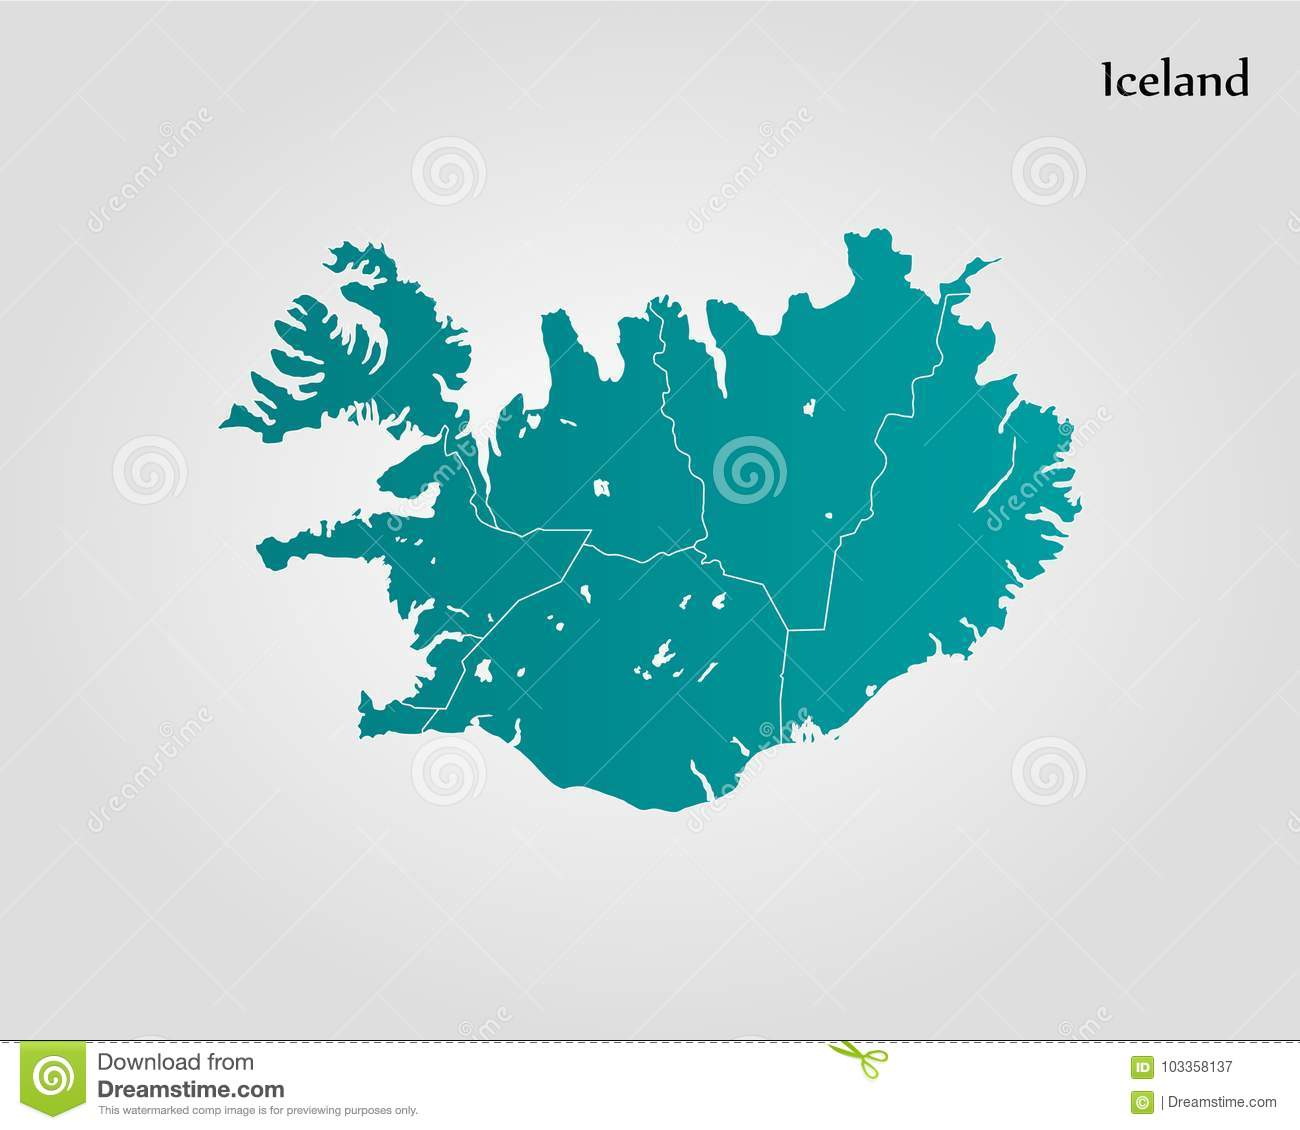 Map of iceland stock illustration illustration of geography 103358137 download map of iceland stock illustration illustration of geography 103358137 gumiabroncs Images